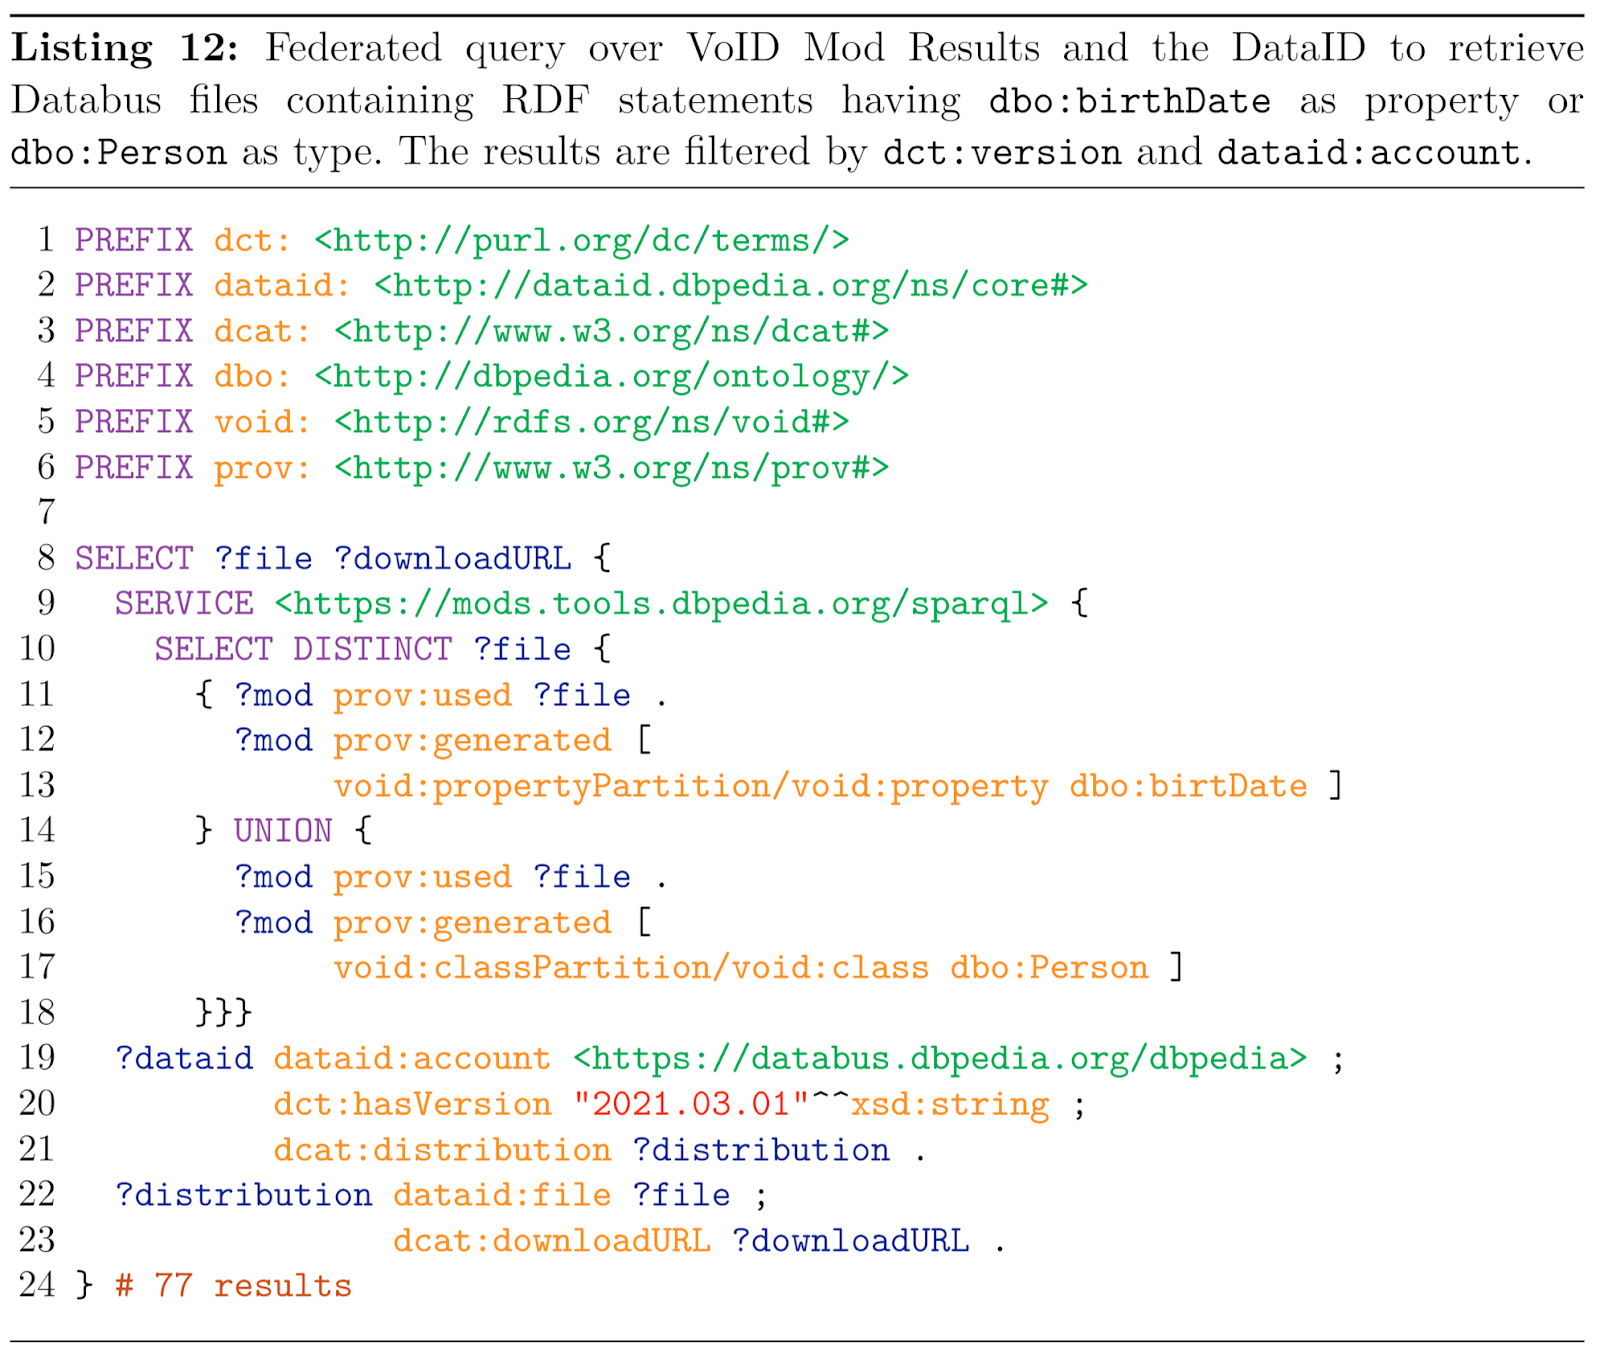 Listing 12: Federated query over VoID Mod Results and the DataID to retrieve Databus files containing RDF statements having dbo:bithData as property or dbo:Person as type. The results are filtered by dct:version and dataid:account